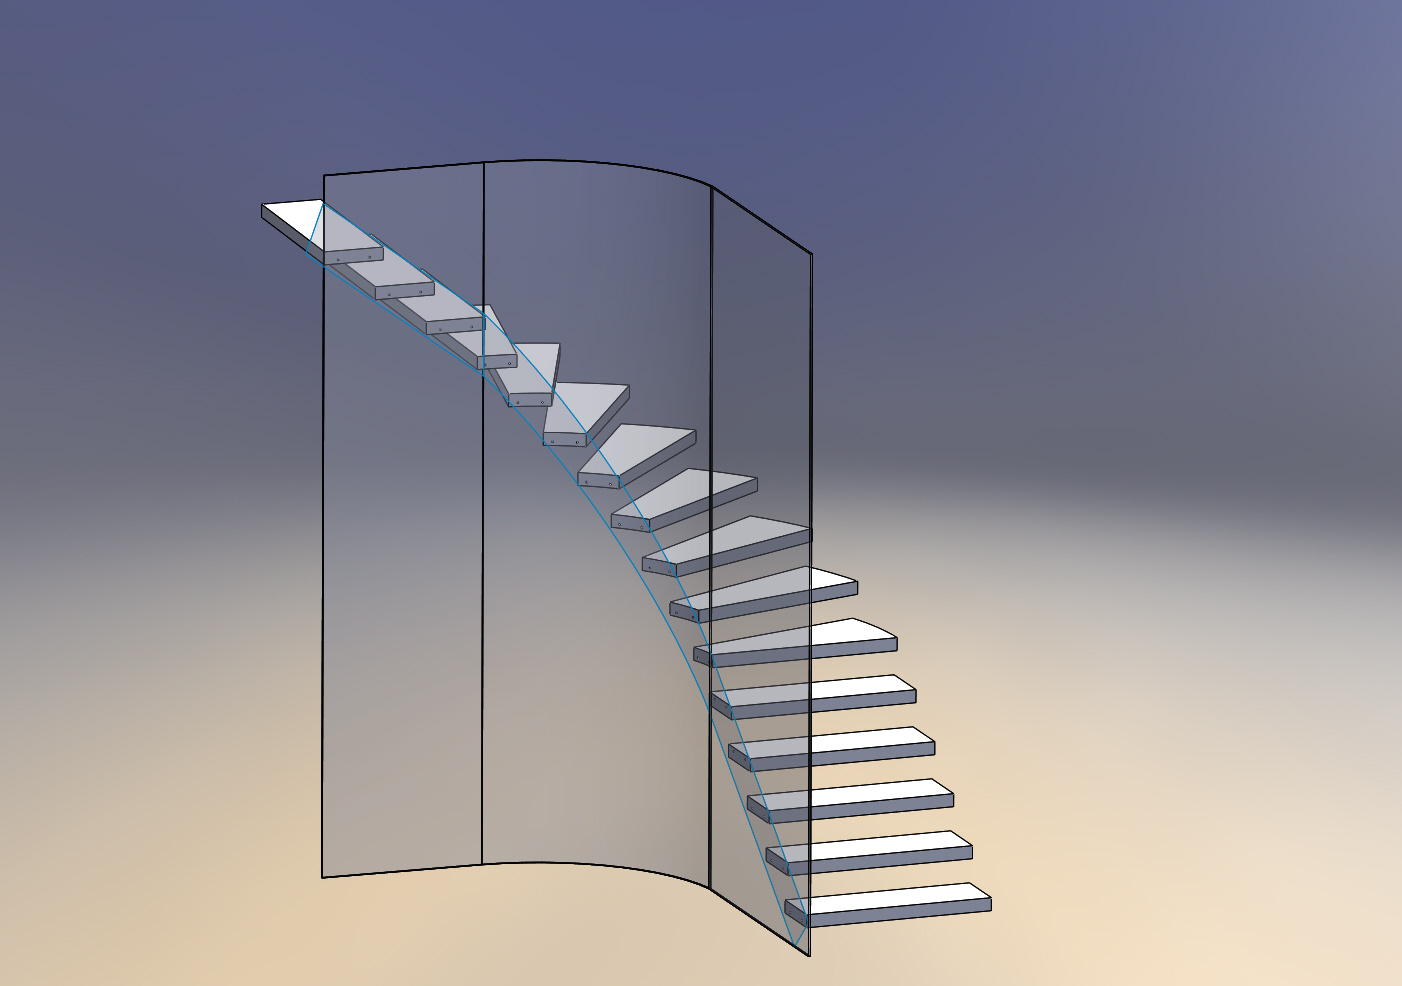 treppe mit radius ds solidworks solidworks l sung vorhanden foren auf. Black Bedroom Furniture Sets. Home Design Ideas